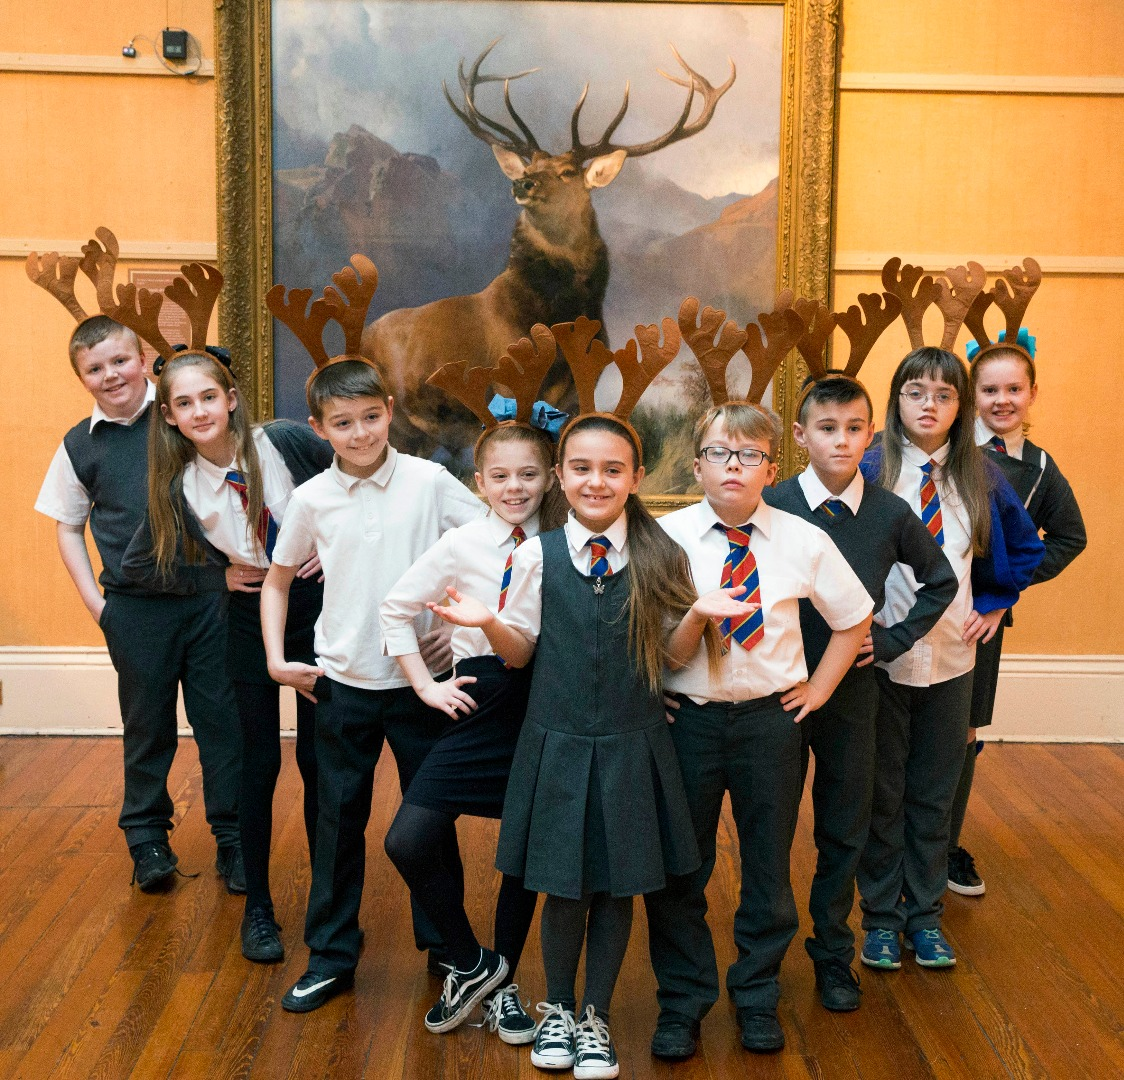 Renfrewshire pupils get sneak preview of iconic Monarch of the Glen painting